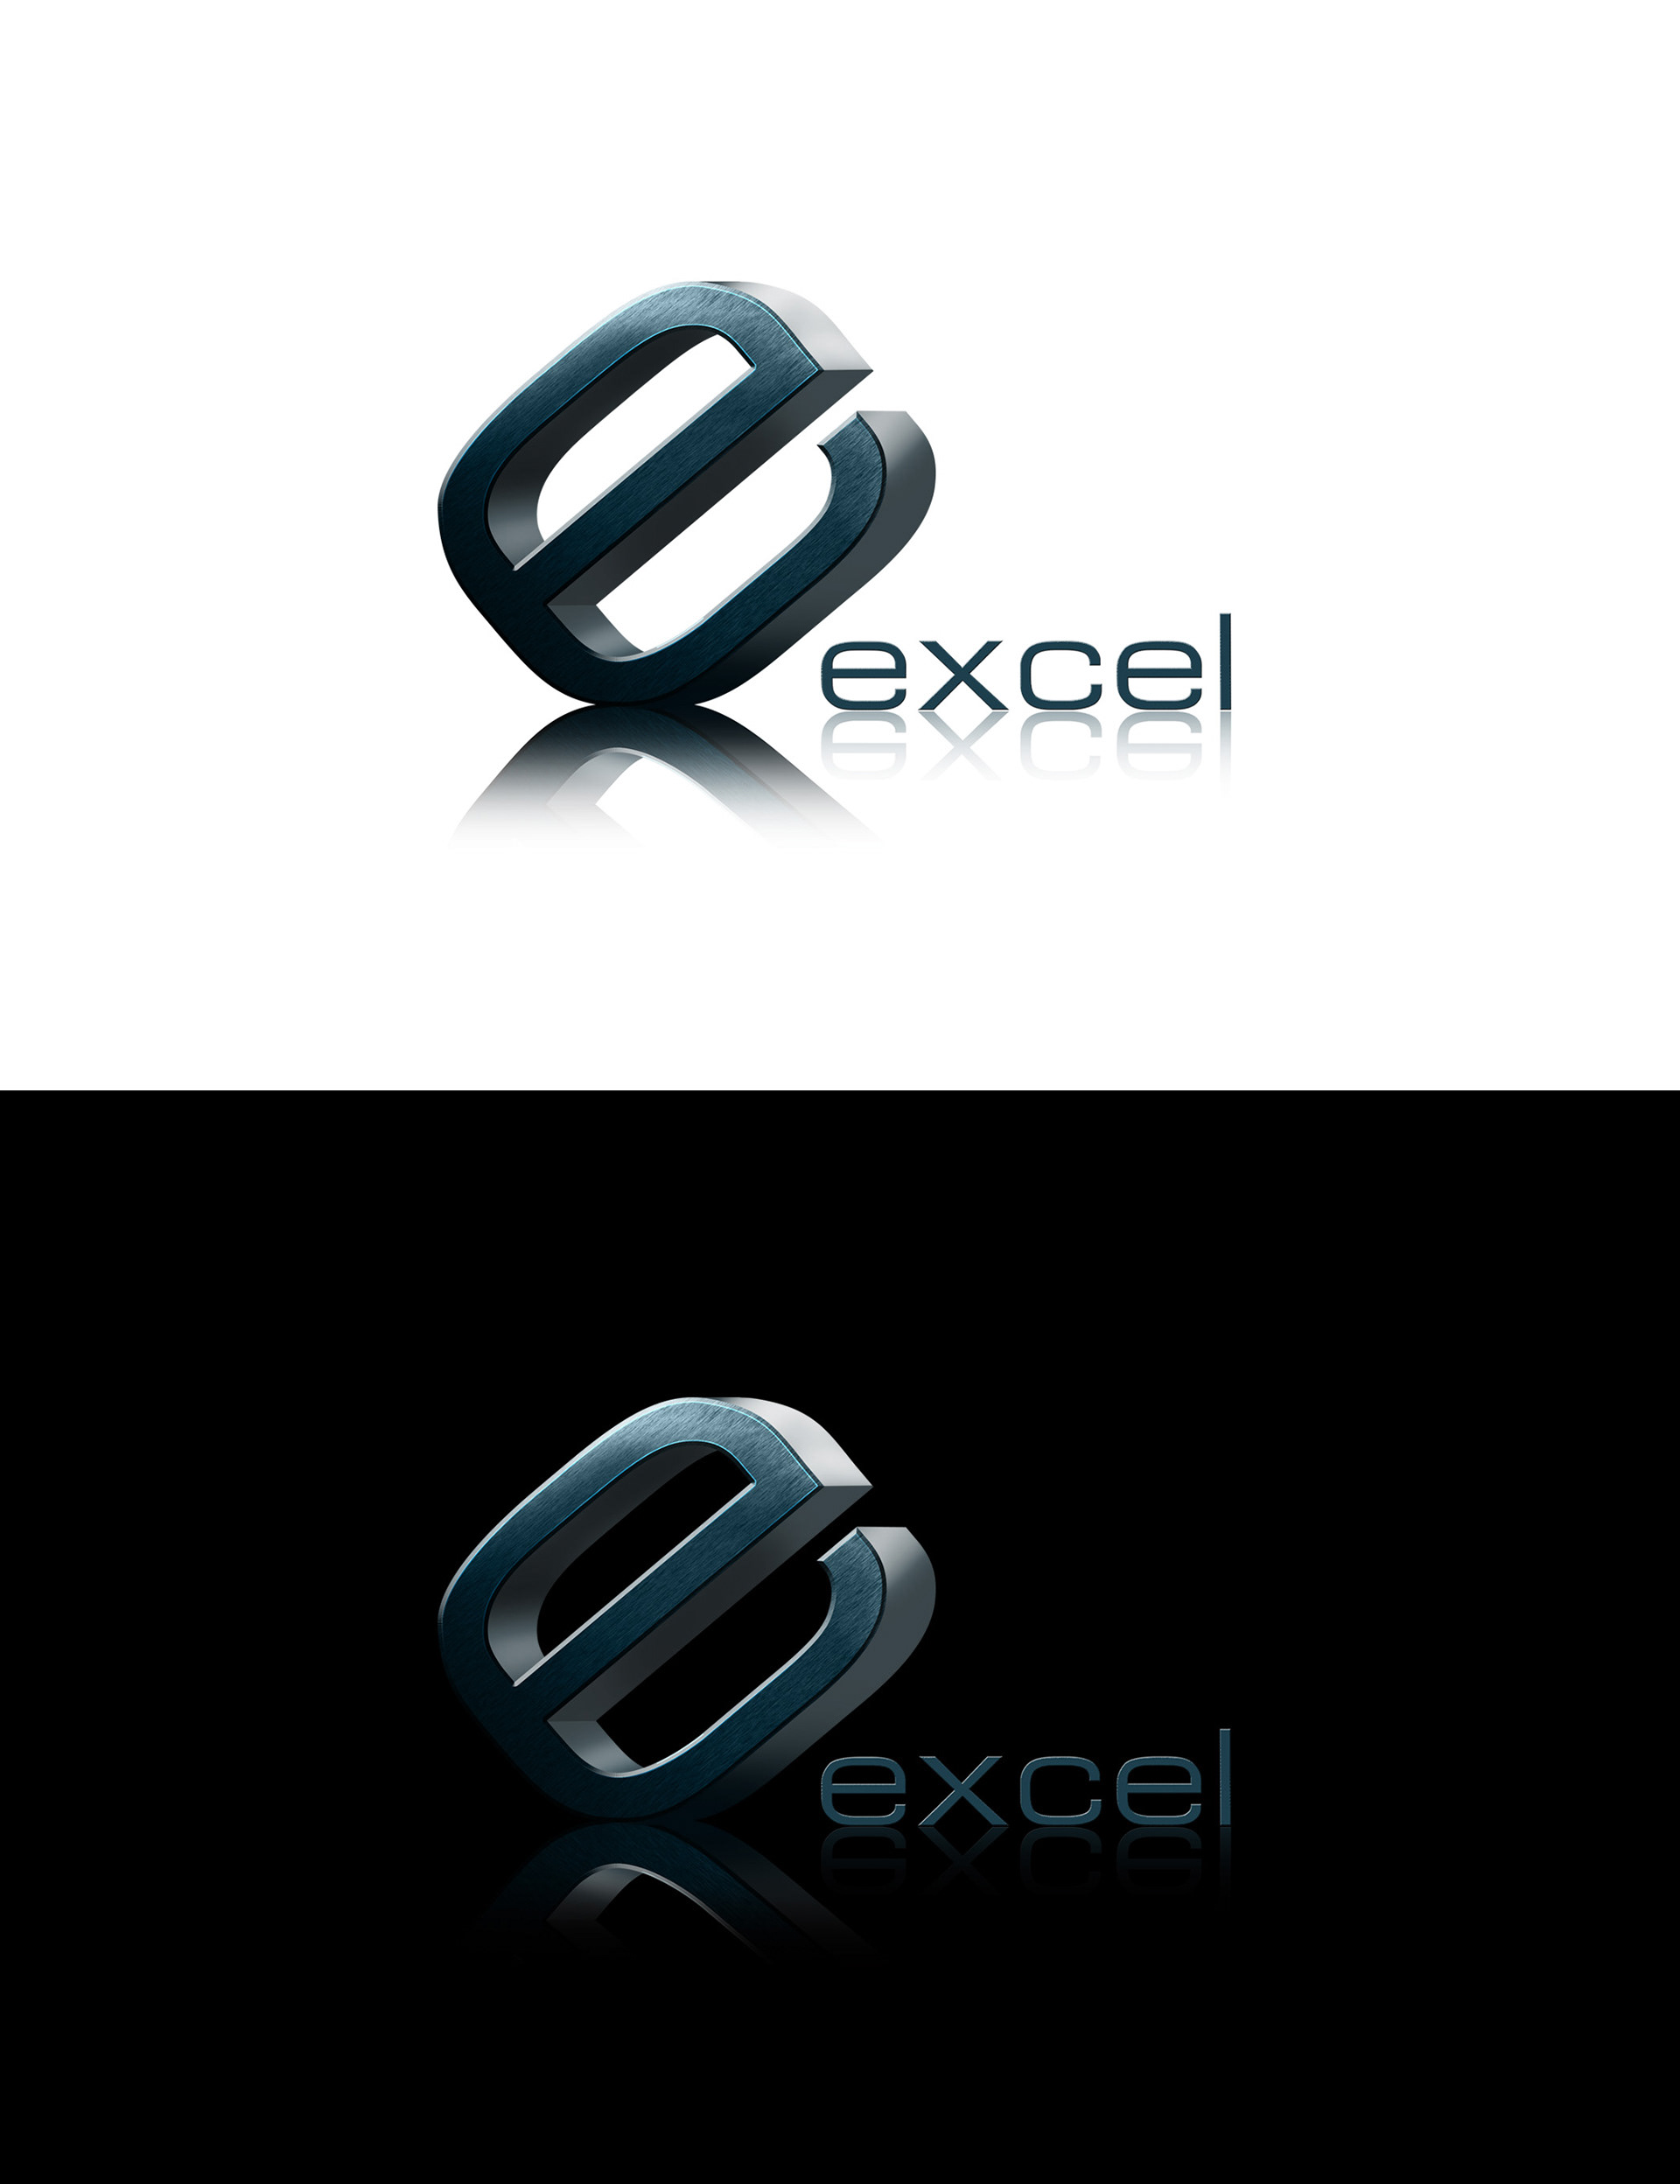 Brandhawaii excel entertainment logo exploration logo exploration for salt lake city ut entertainment company excel entertainment biocorpaavc